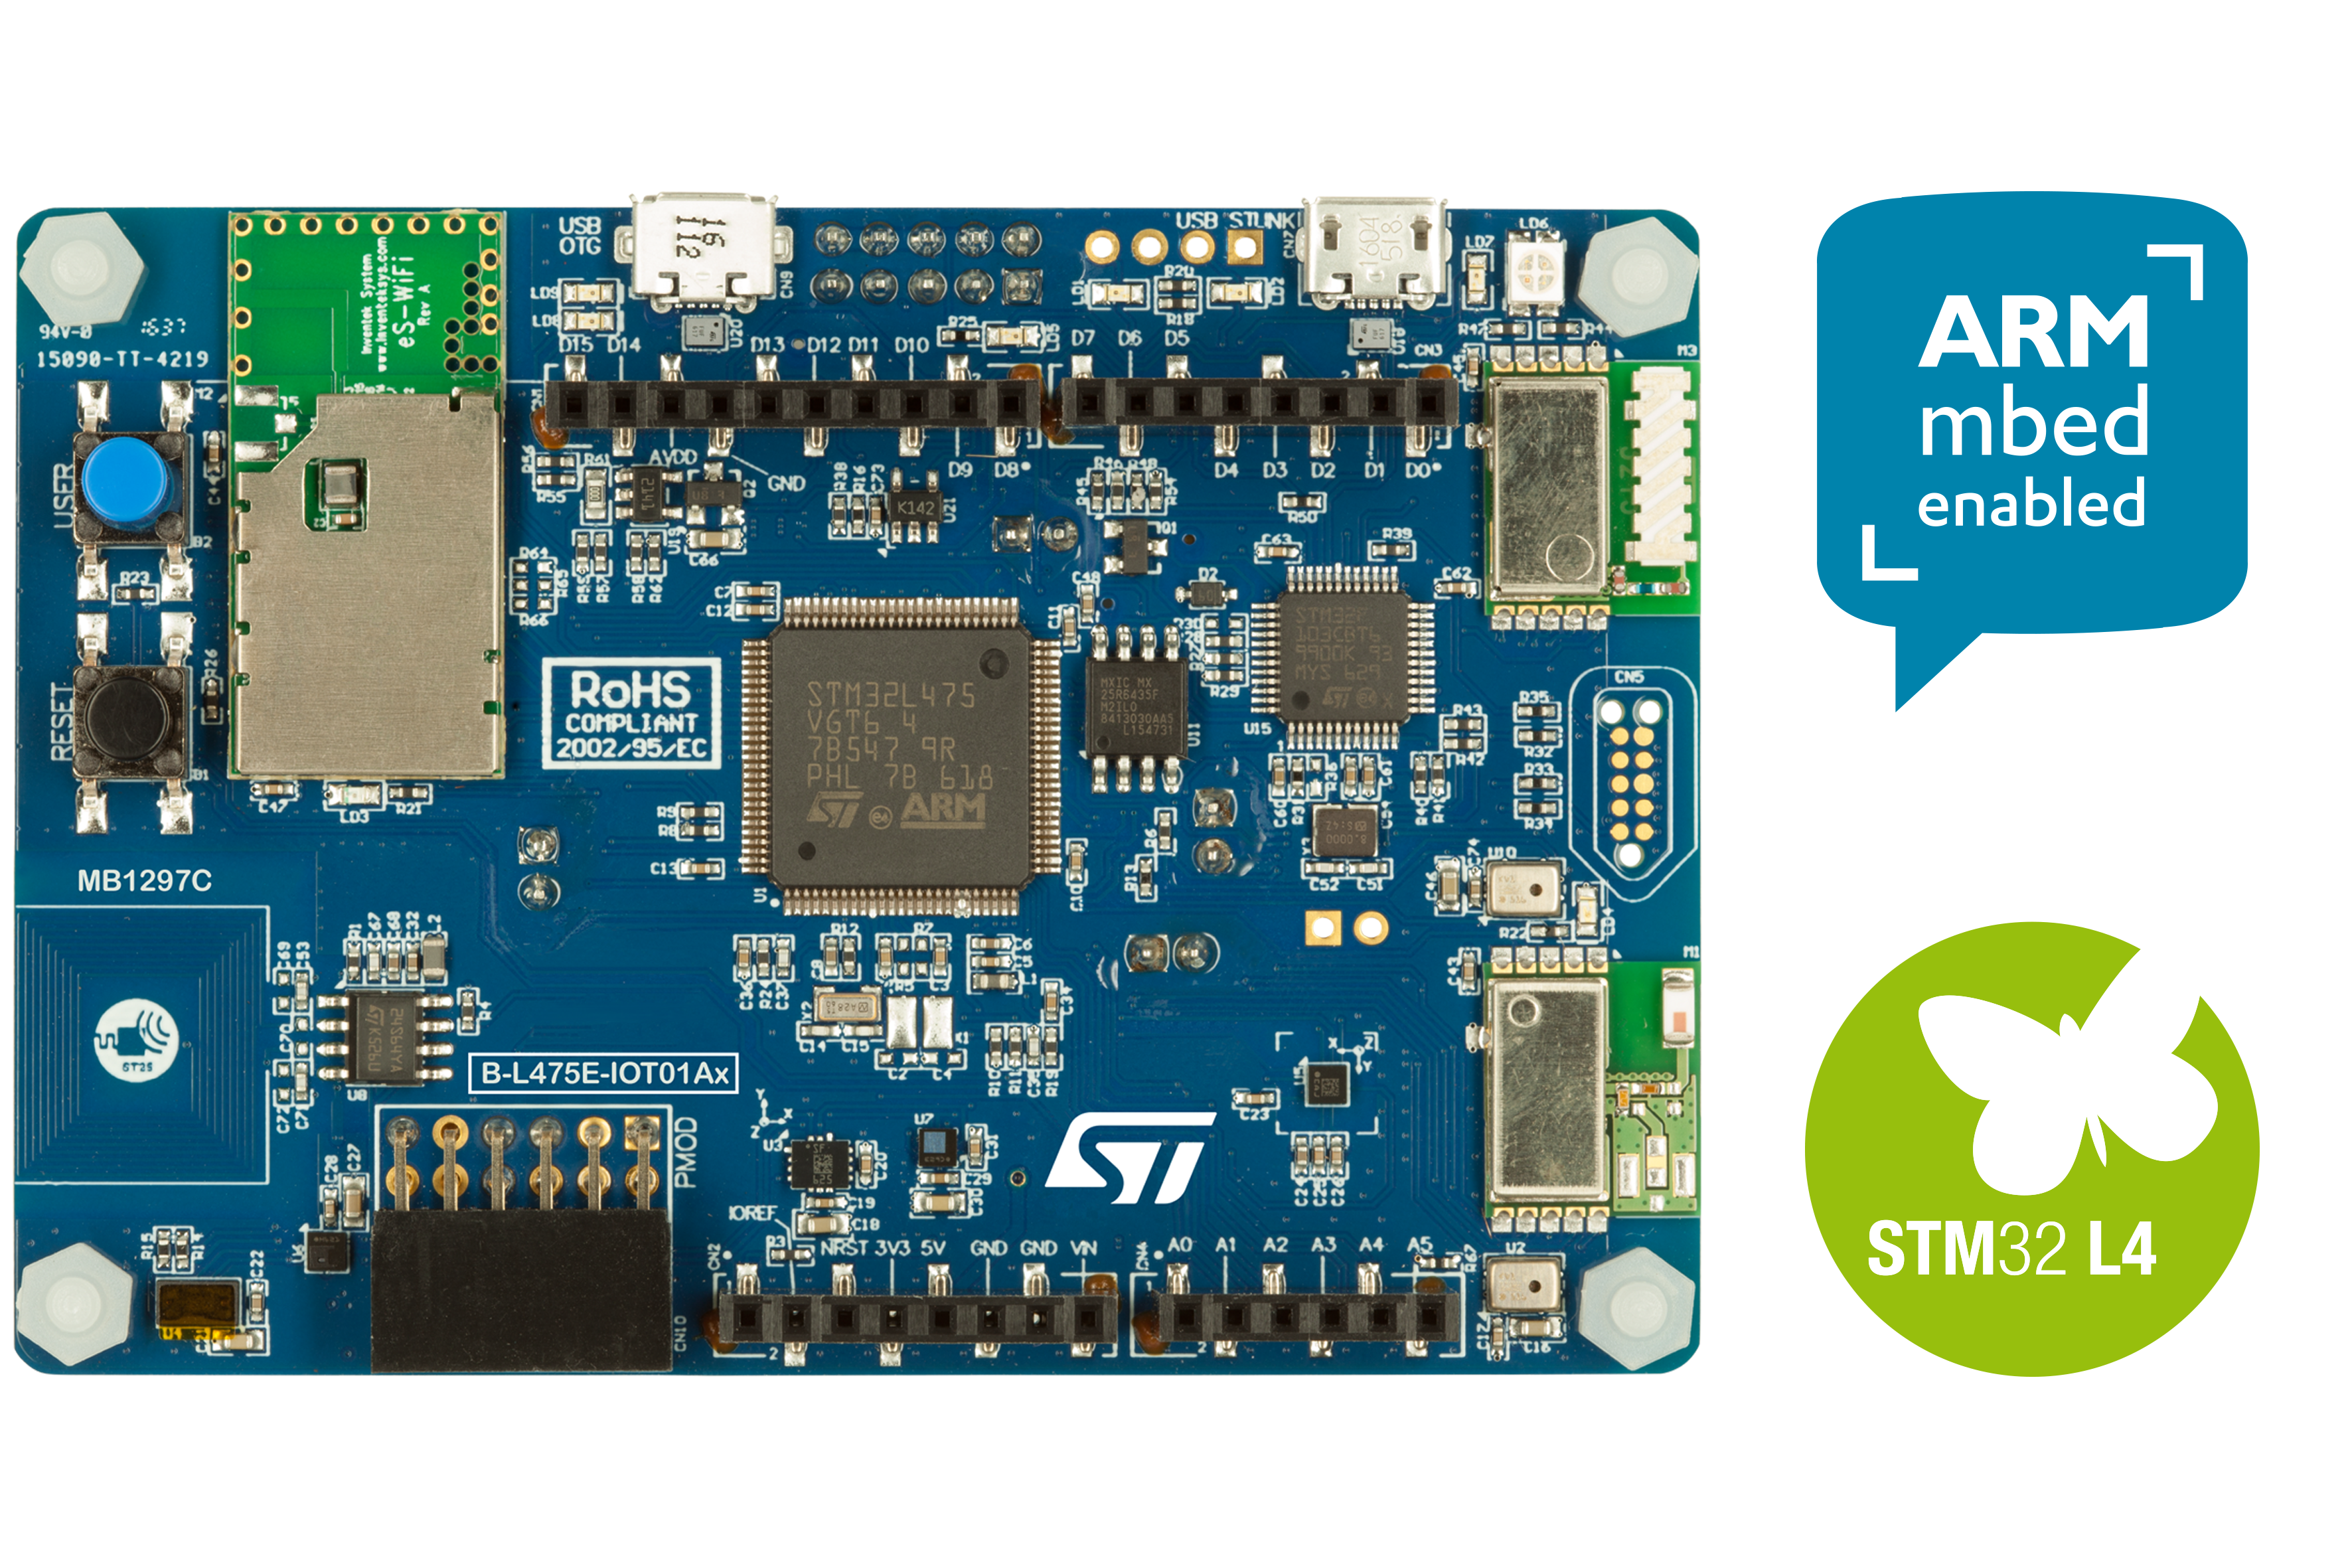 STM32L4 Discovery kit IoT node, low-power wireless, BLE, NFC, SubGHz, Wi-Fi B-L475E-IOT01A